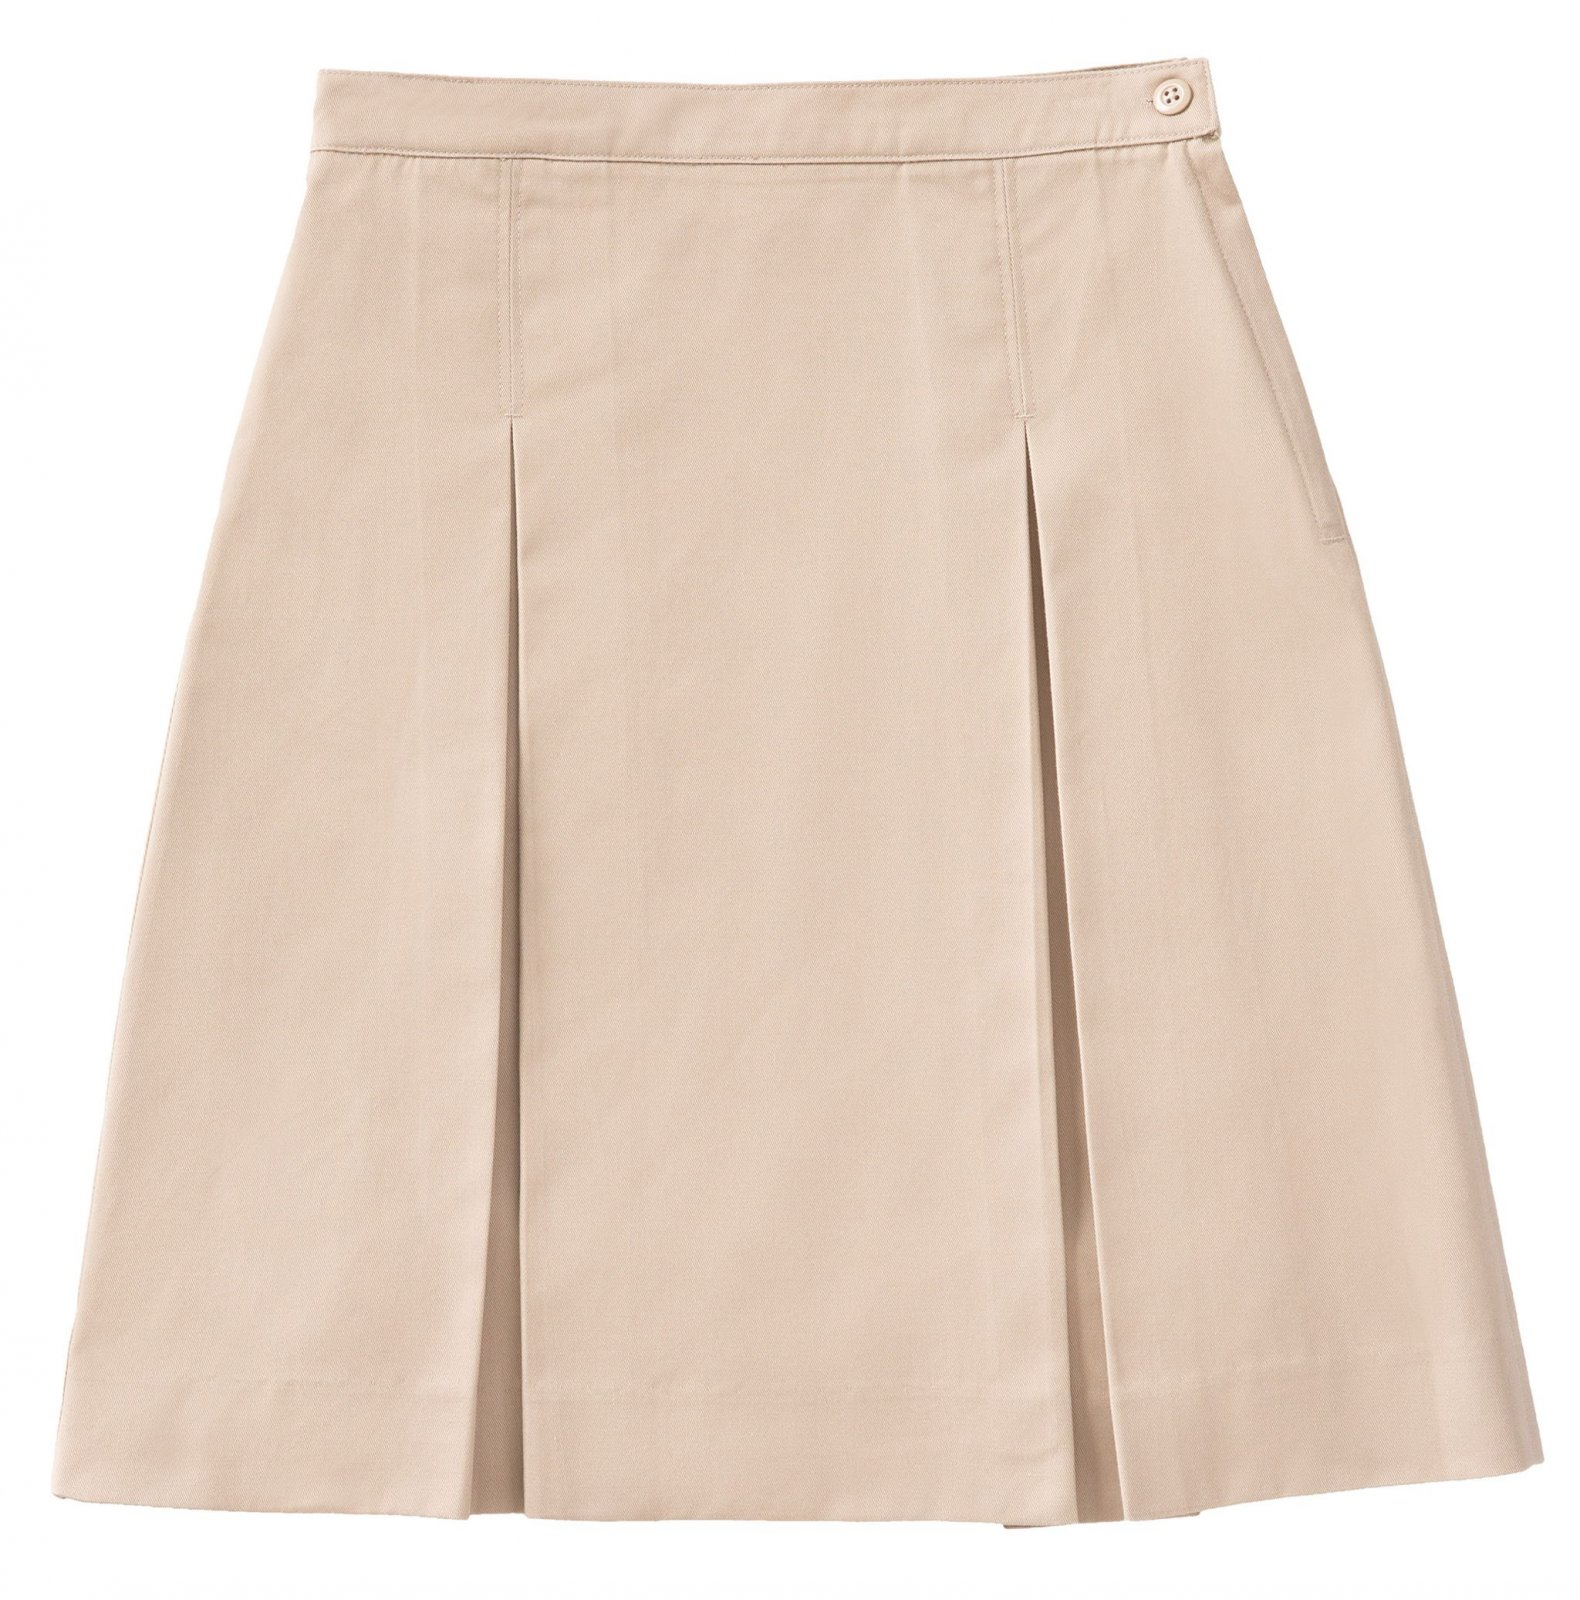 Kick Pleat Skirt - Khaki